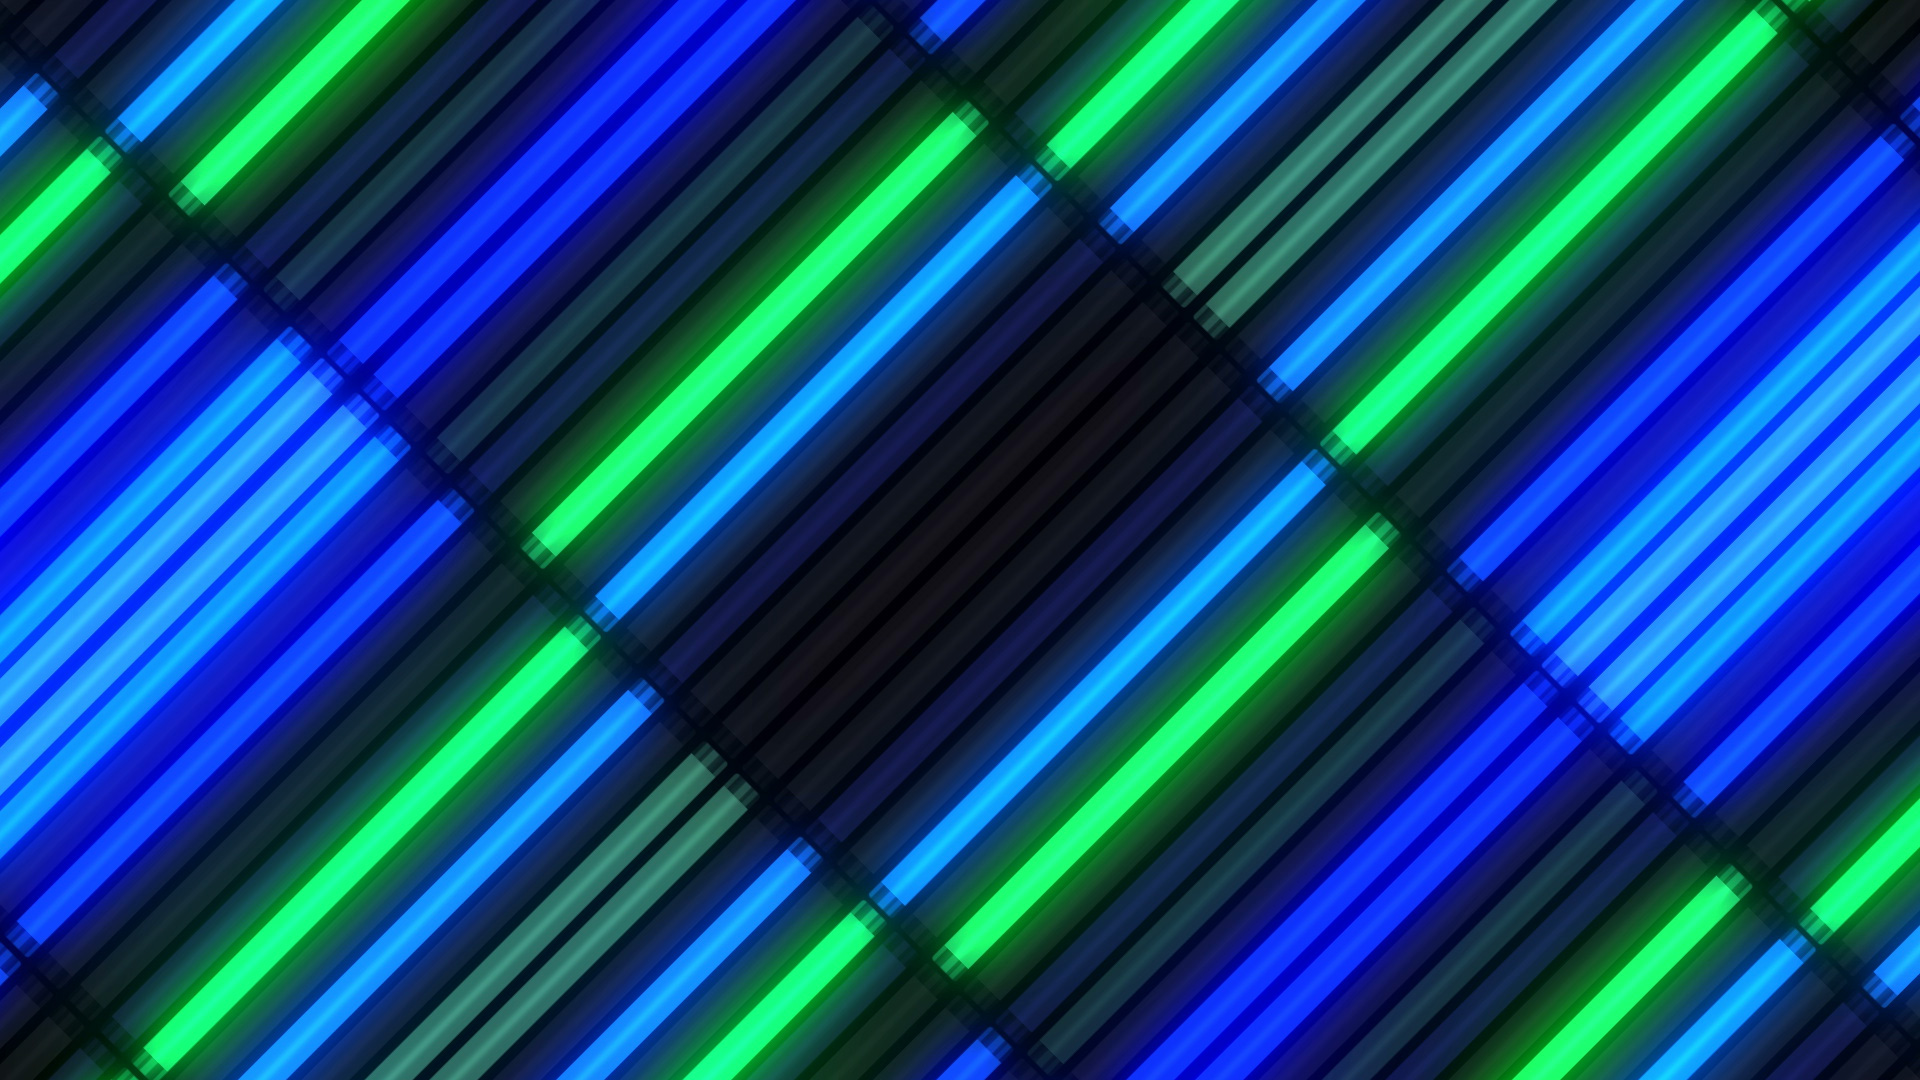 Colorful Neon Lamps VJ Pack - Gesh.tv